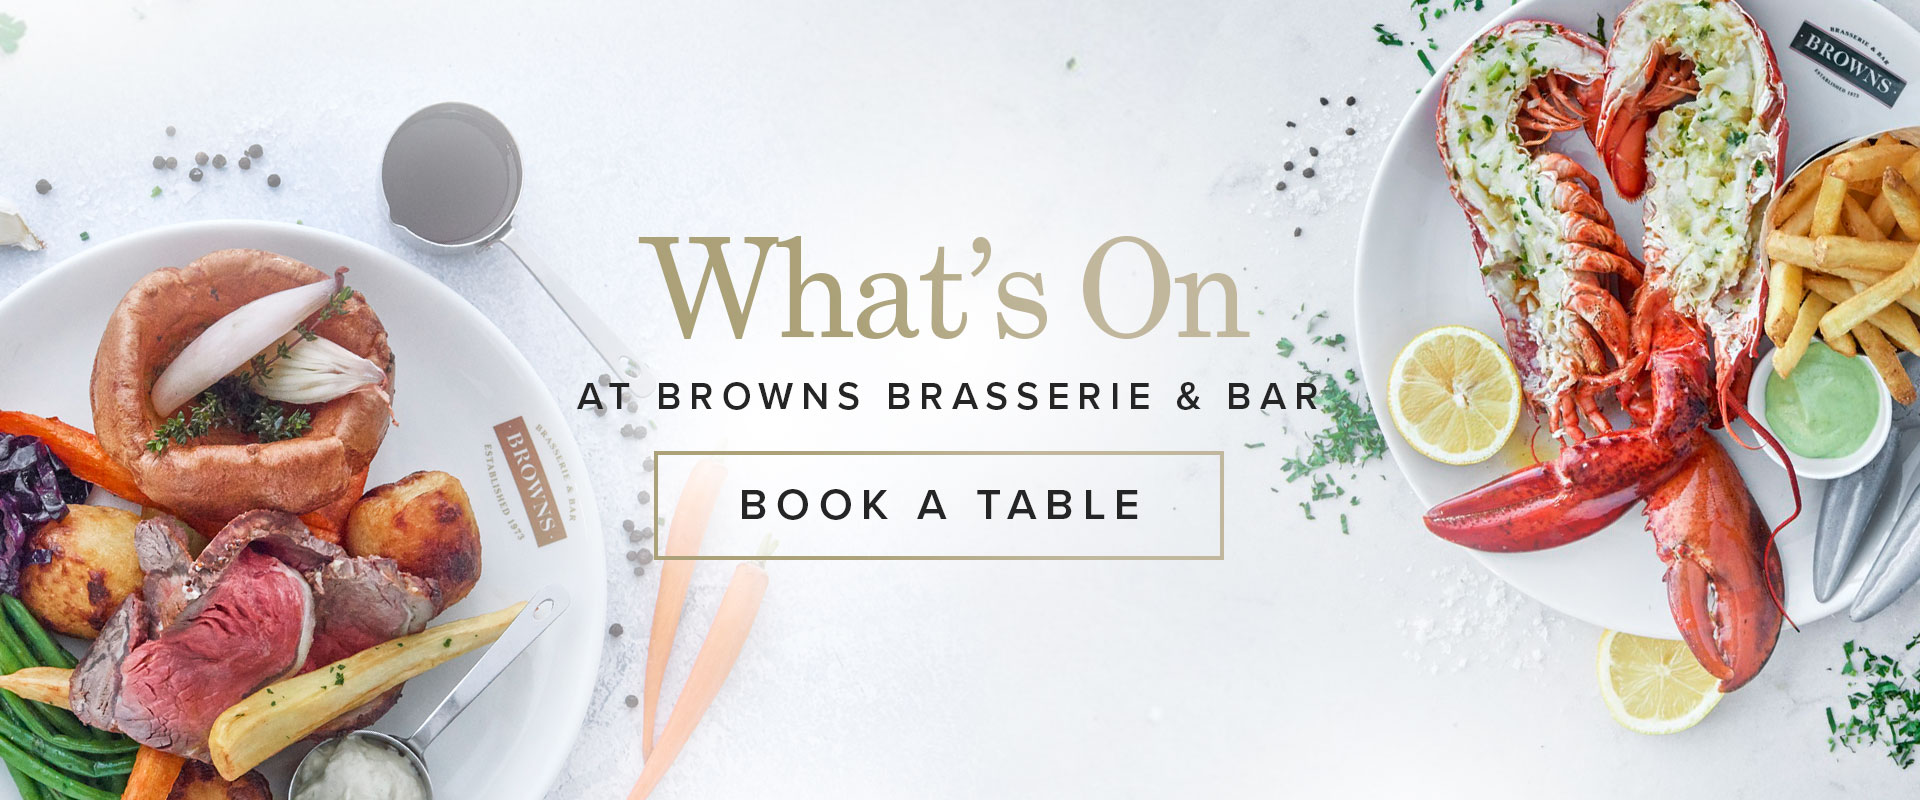 What's on at Browns Birmingham | Browns